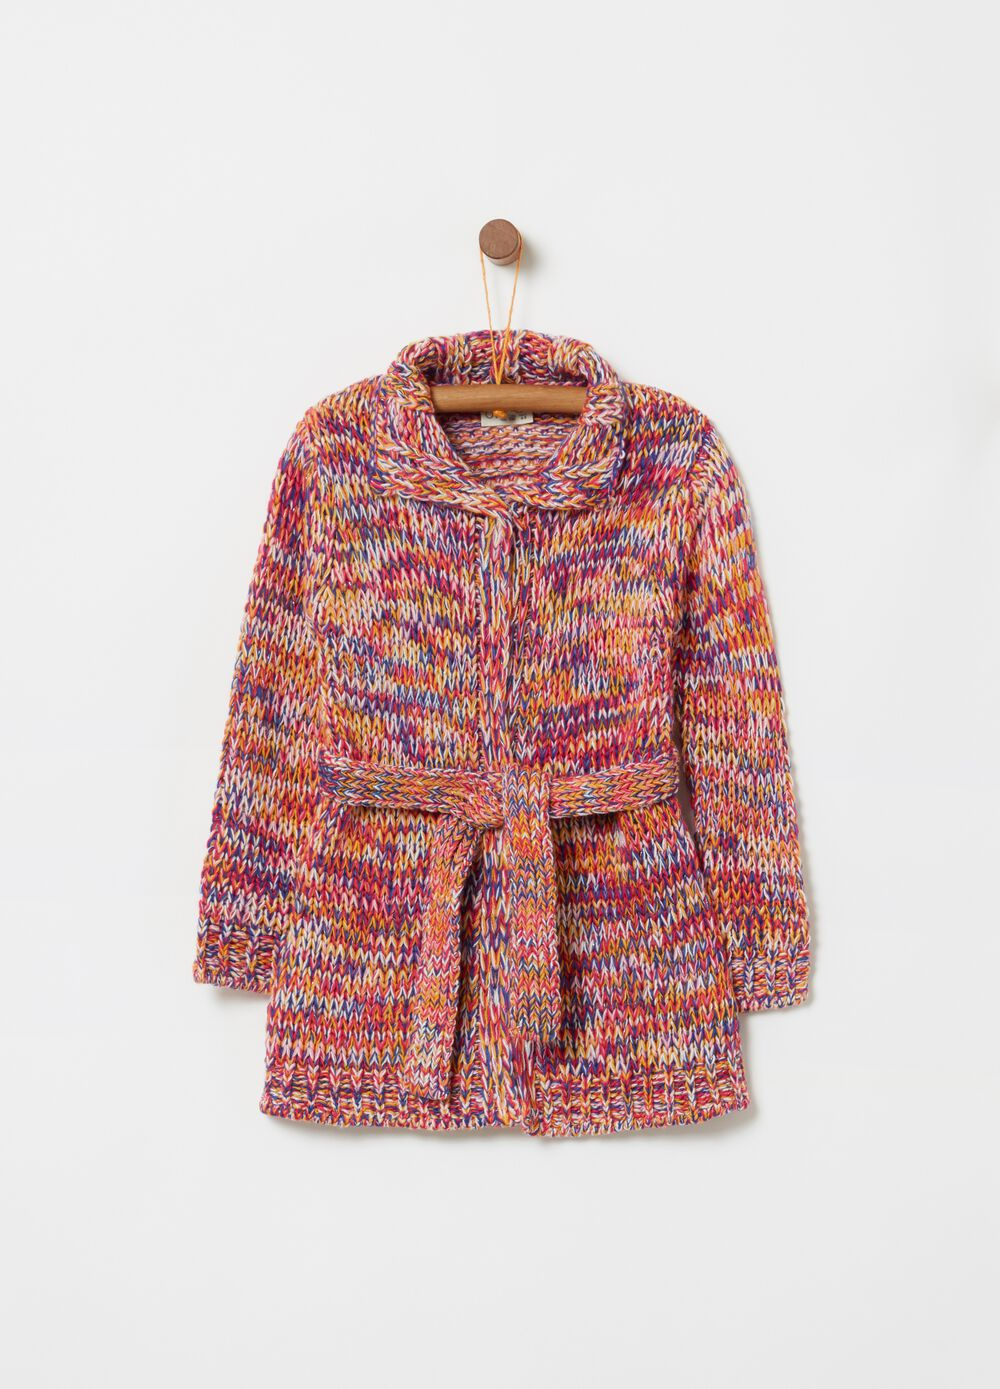 Multi-coloured maxi knitted cardigan with lurex